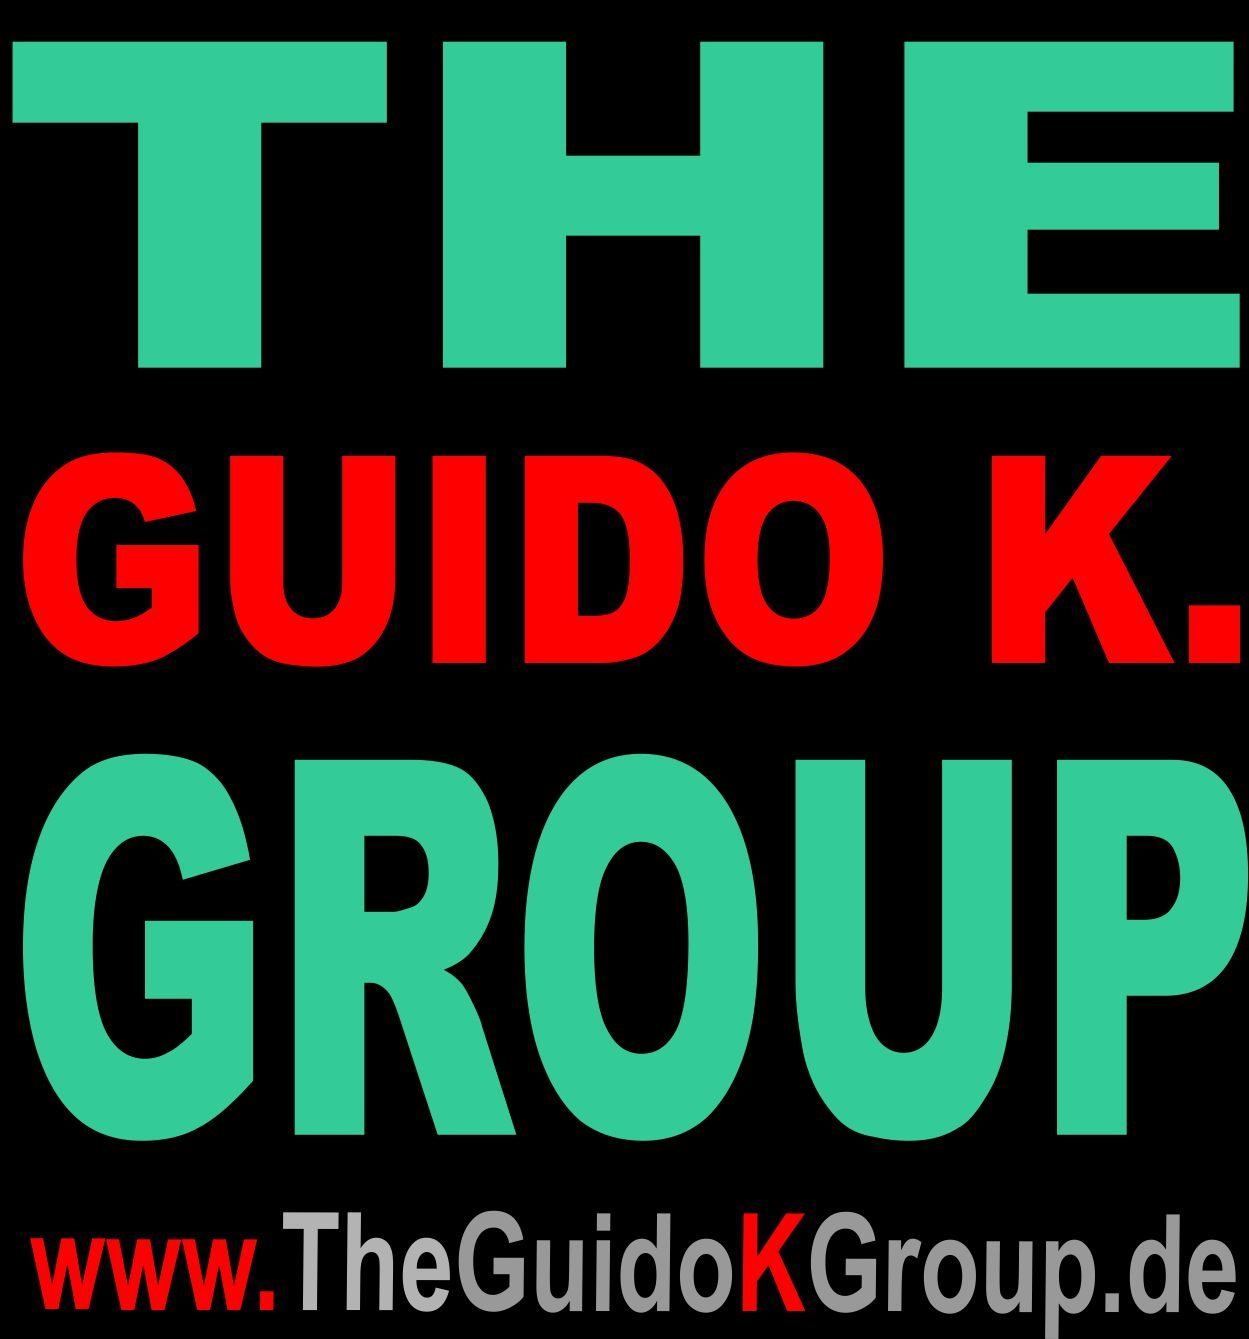 Logo The Guido K. Group